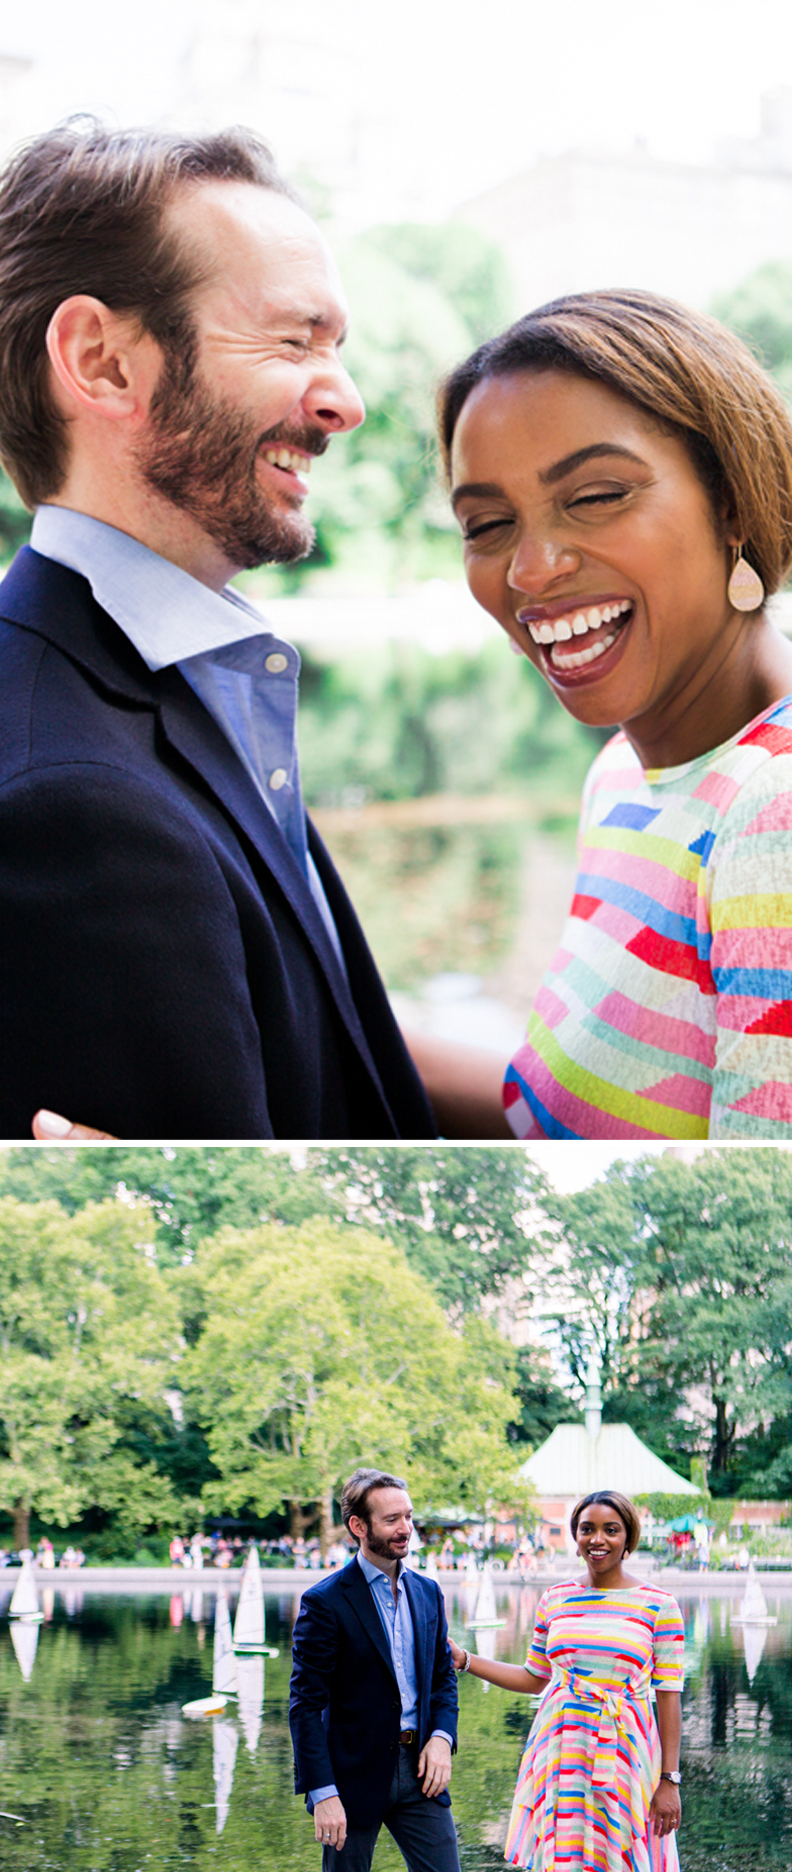 Keia_Nick_Engagement_Mo_Davis_Photography7.jpg